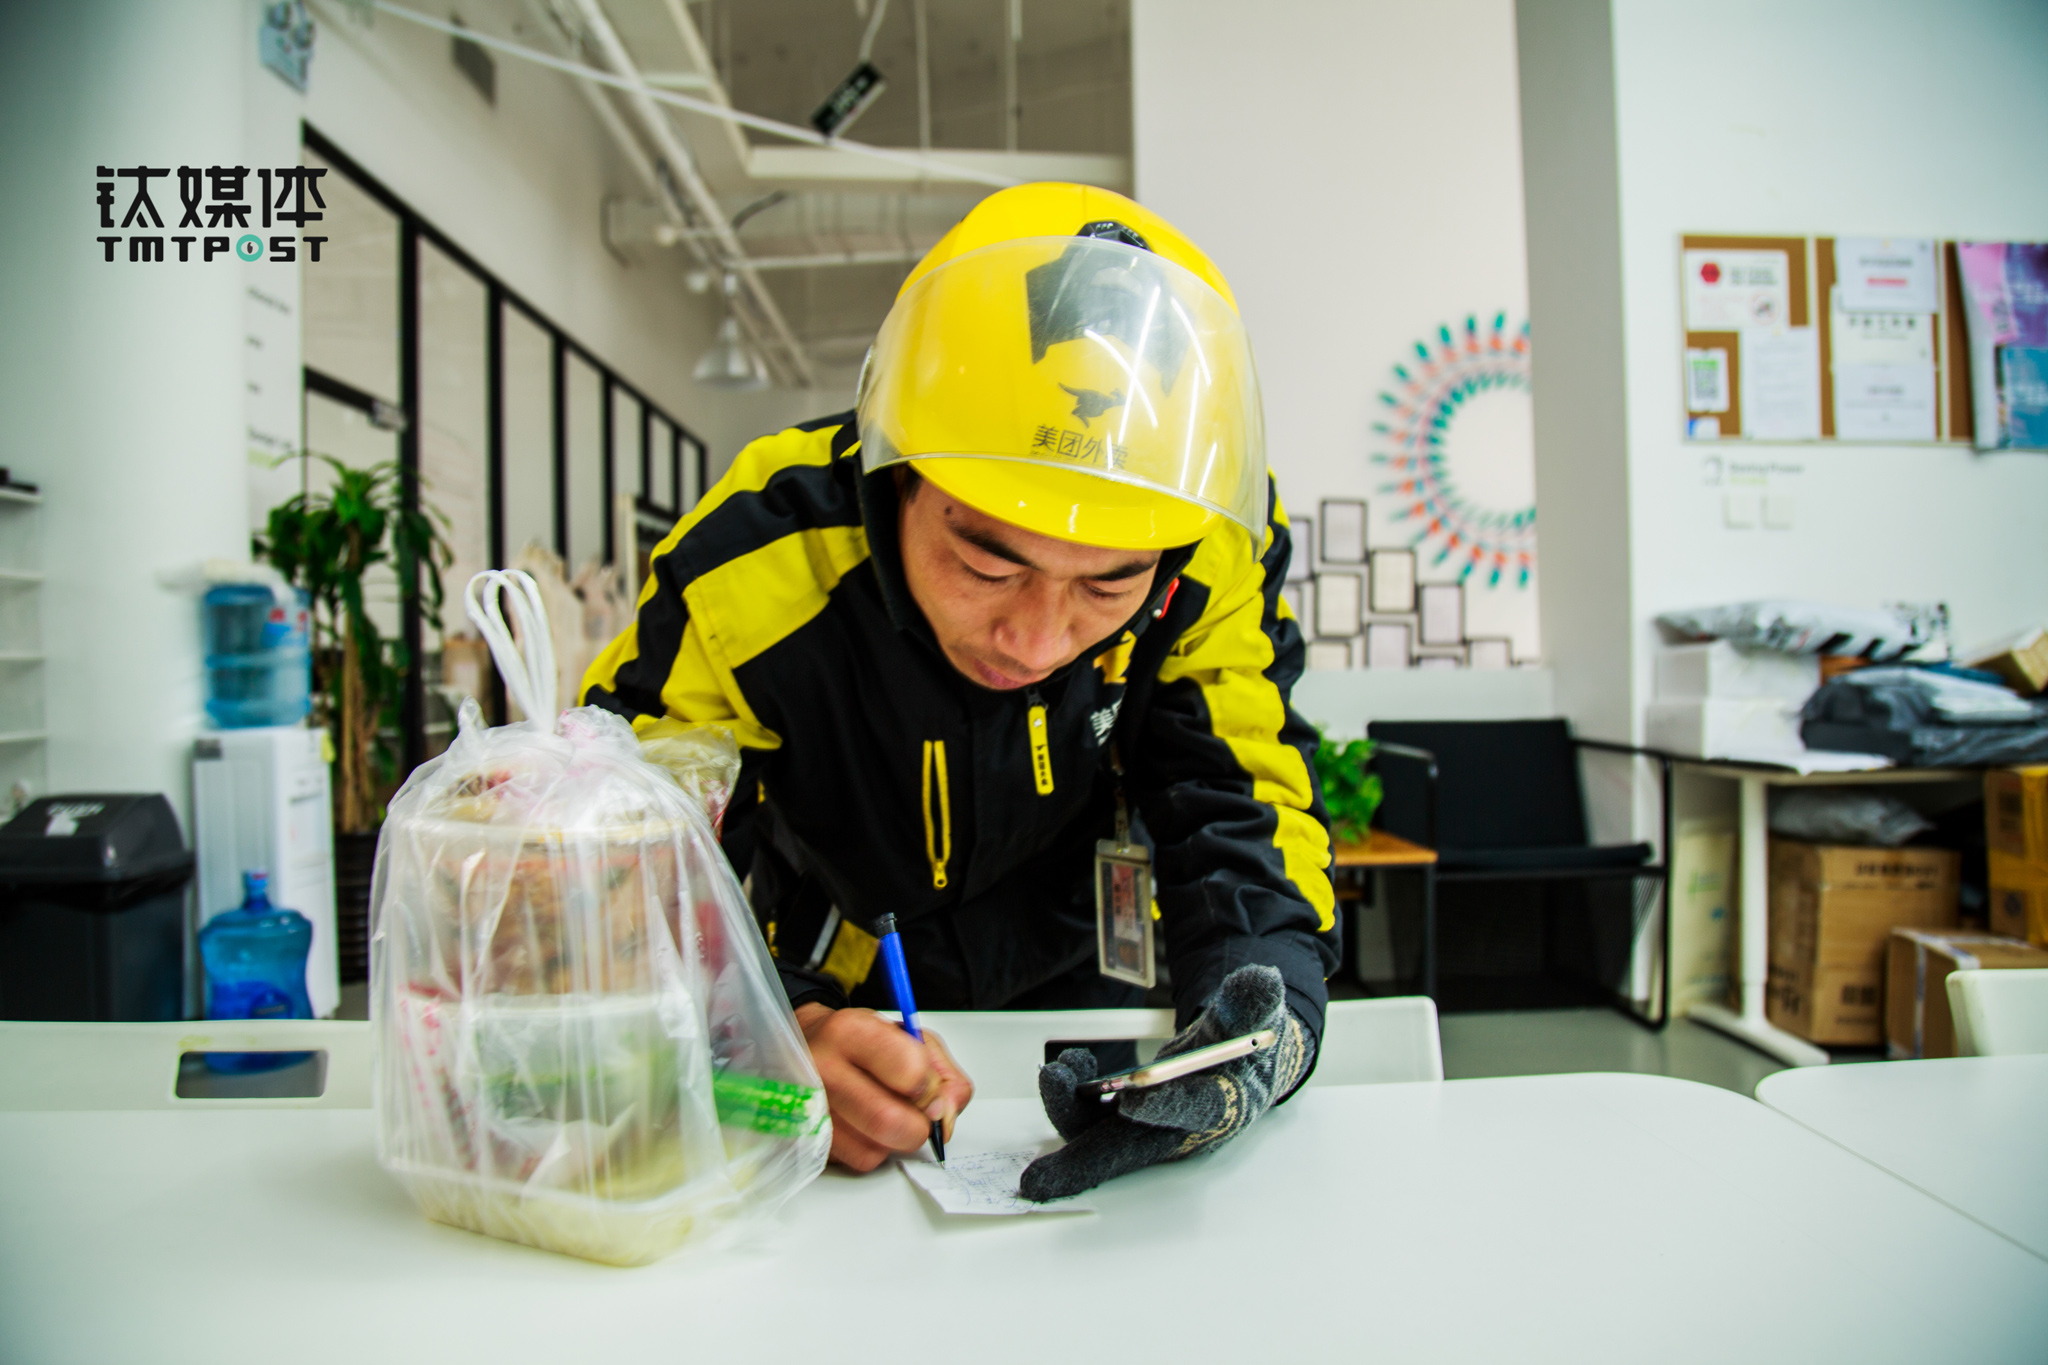 After getting the food, Zhao rushed to an office tower near Dajiaoting. The client didn't write a clear address and Zhao had to look up the client's phone number to reach him. Then he waited for the client to come pick up the food. This day marked the full month of his career life as a delivery guy. He has got 15 good remarks, but also gets complaints from clients about taking too long to get the food.